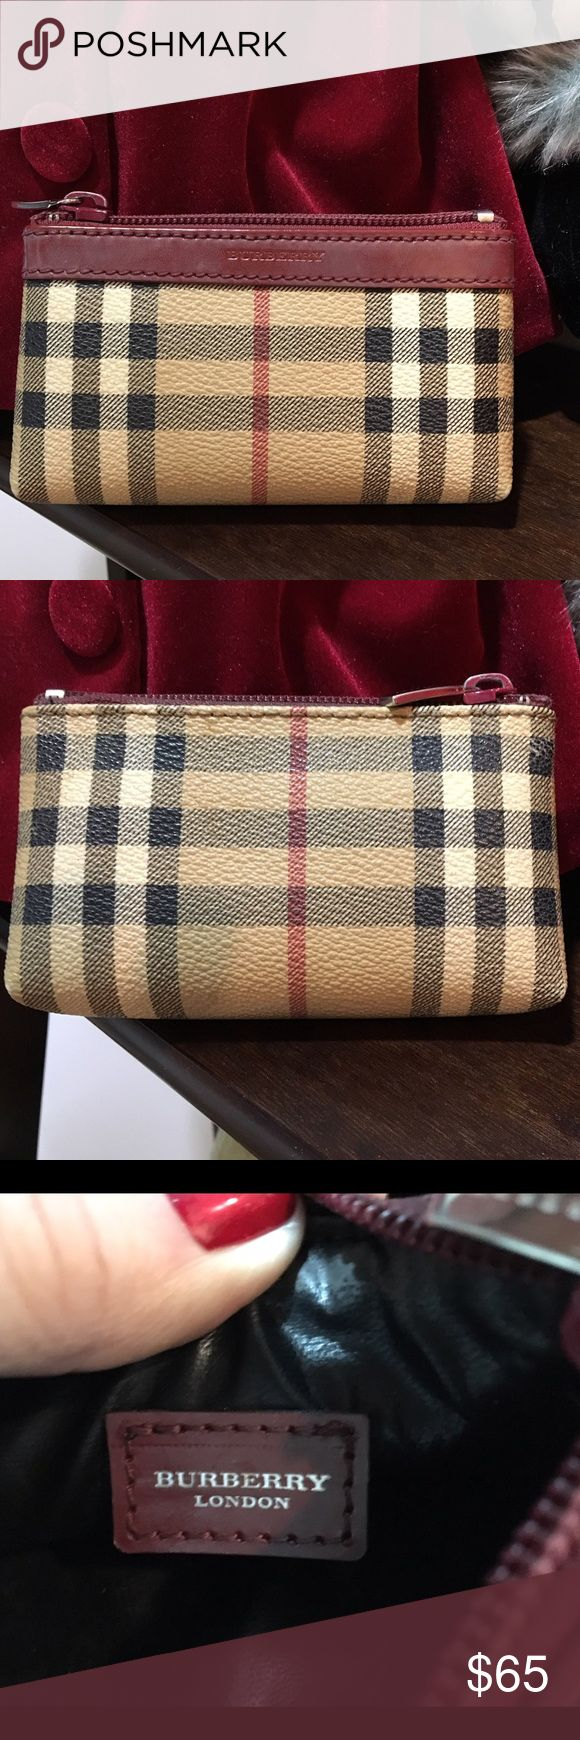 "Authentic Burberry Canvas/lLeather Trim Coin Purse Classic Burberry Plaid: cream, beige, wine and black. Zipper closure. Black lining. Measures 5.25"" L x 3.75""H x 1"" D. Made in Italy. Slight wear on the bottom corners. Great little purse for nights out. Burberry Bags Clutches & Wristlets"